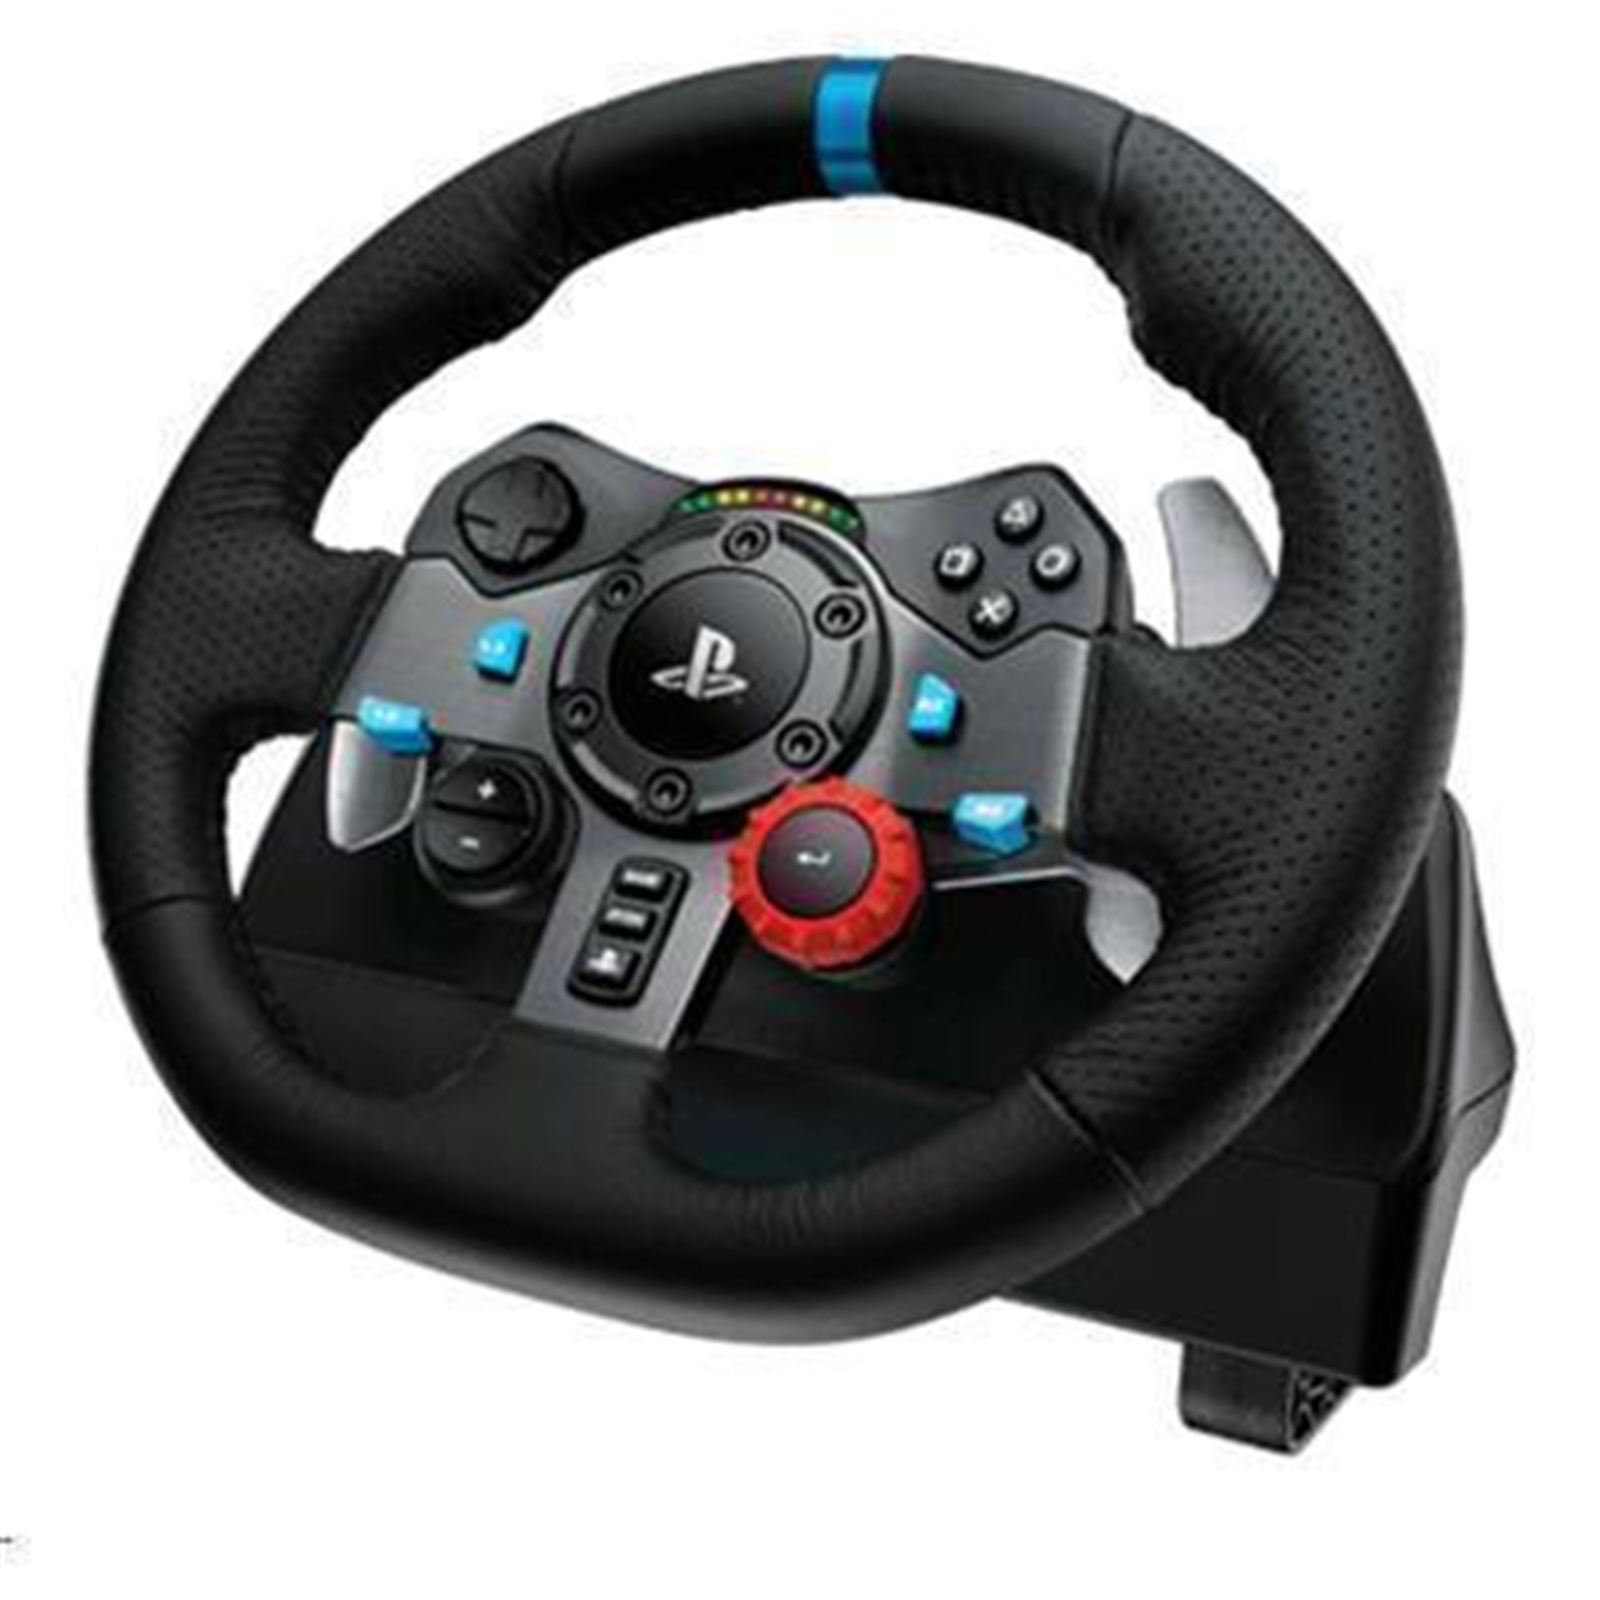 Buy the Logitech G29 Driving Force Racing Wheel Gaming for